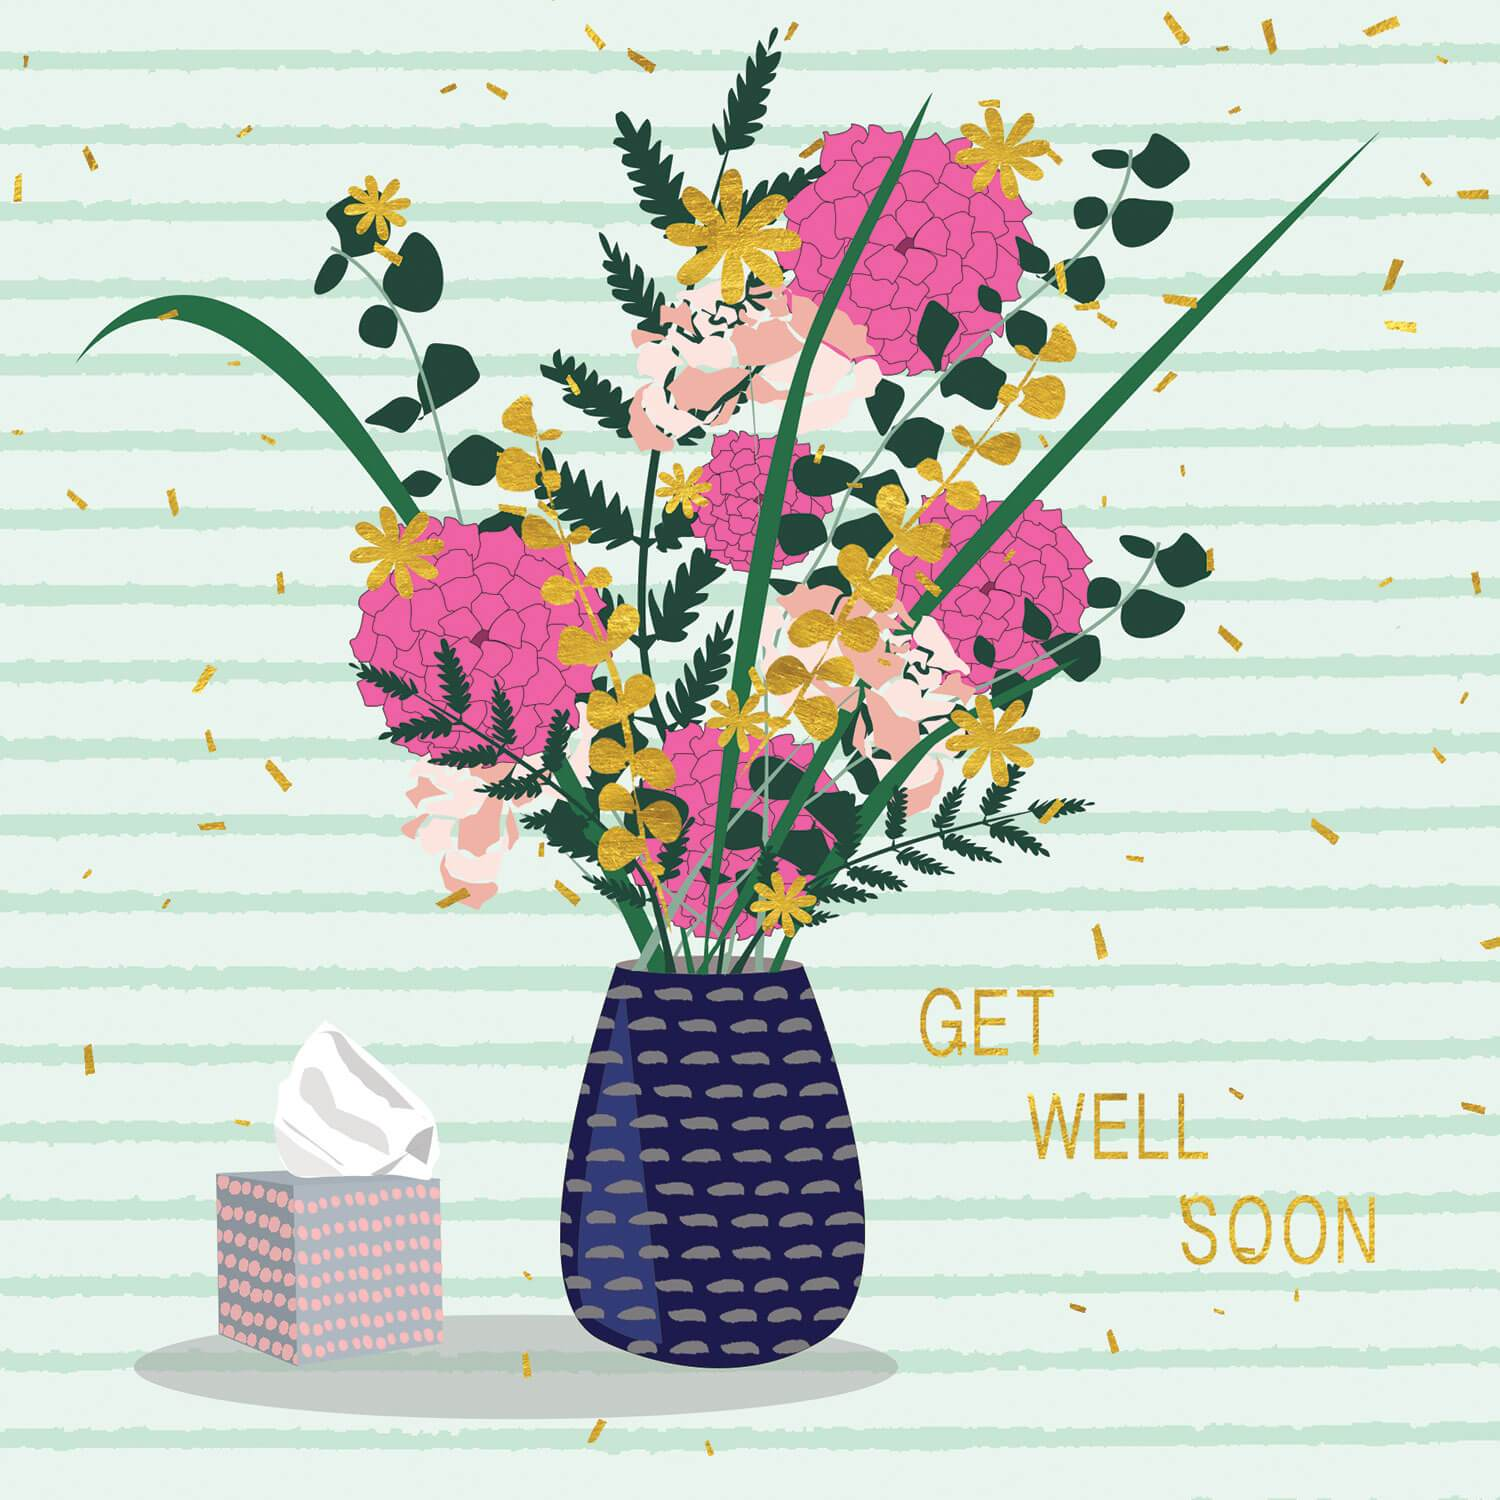 Get Well Soon Flowers Milkwood Art Licensing